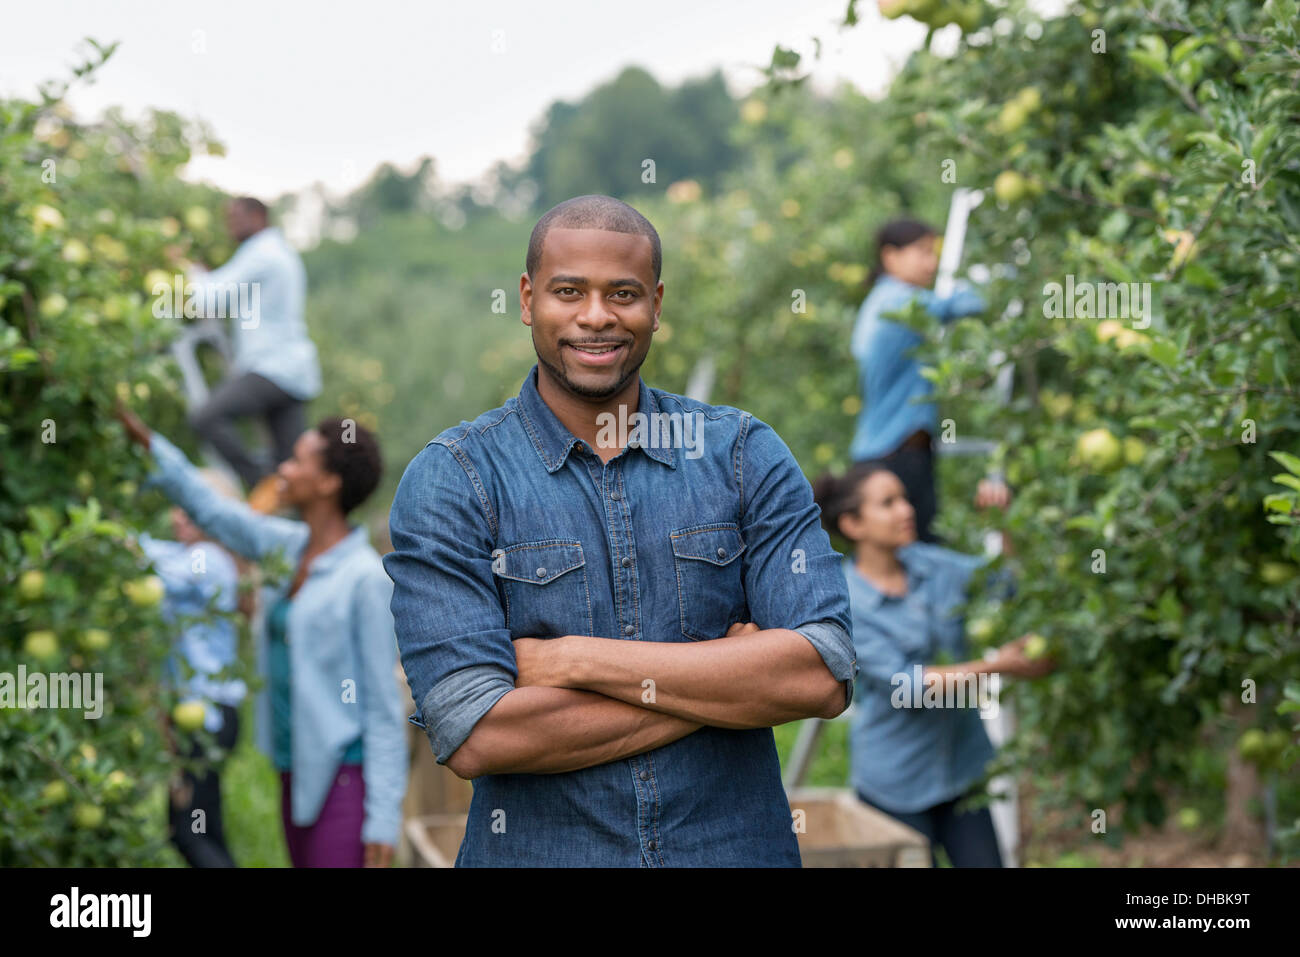 An organic orchard on a farm. A group of people picking green apples from the trees. - Stock Image